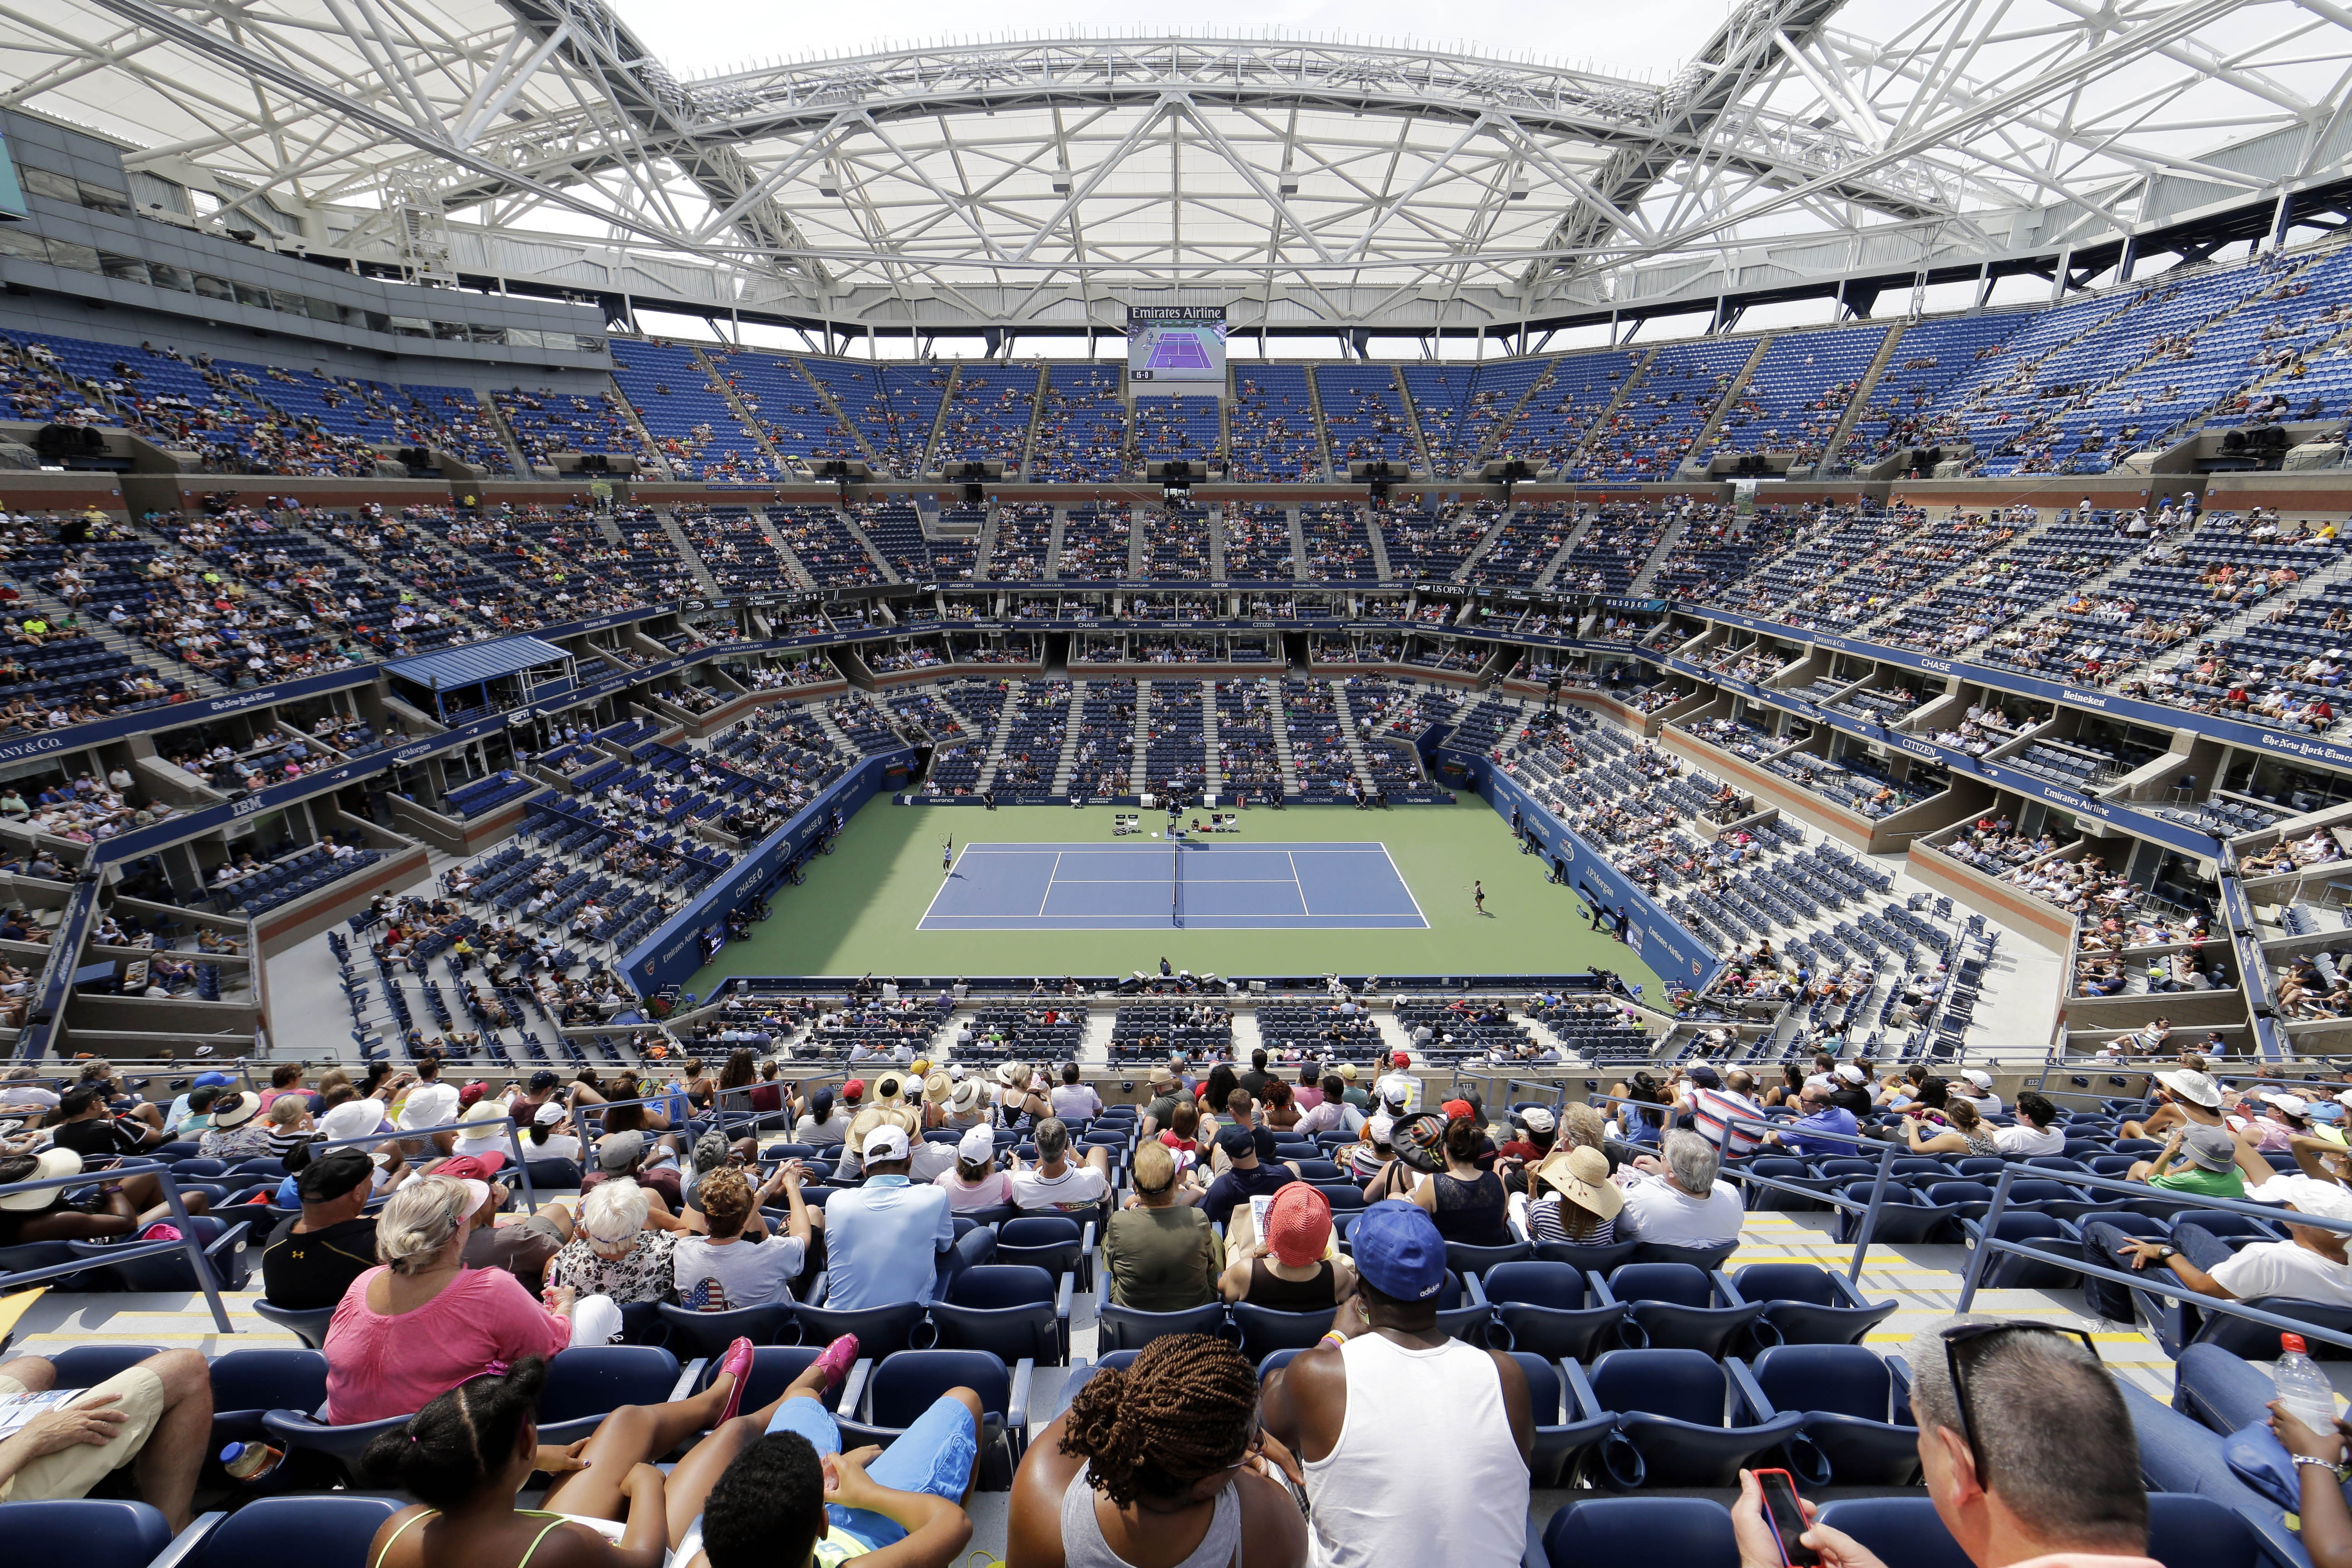 Tennis fans watch play during the first round of the U.S. Open tennis tournament under the frame of the uncompleted roof over Arthur Ashe Stadium, Monday, Aug. 31, 2015, in New York. (AP Photo/Matt Rourke)